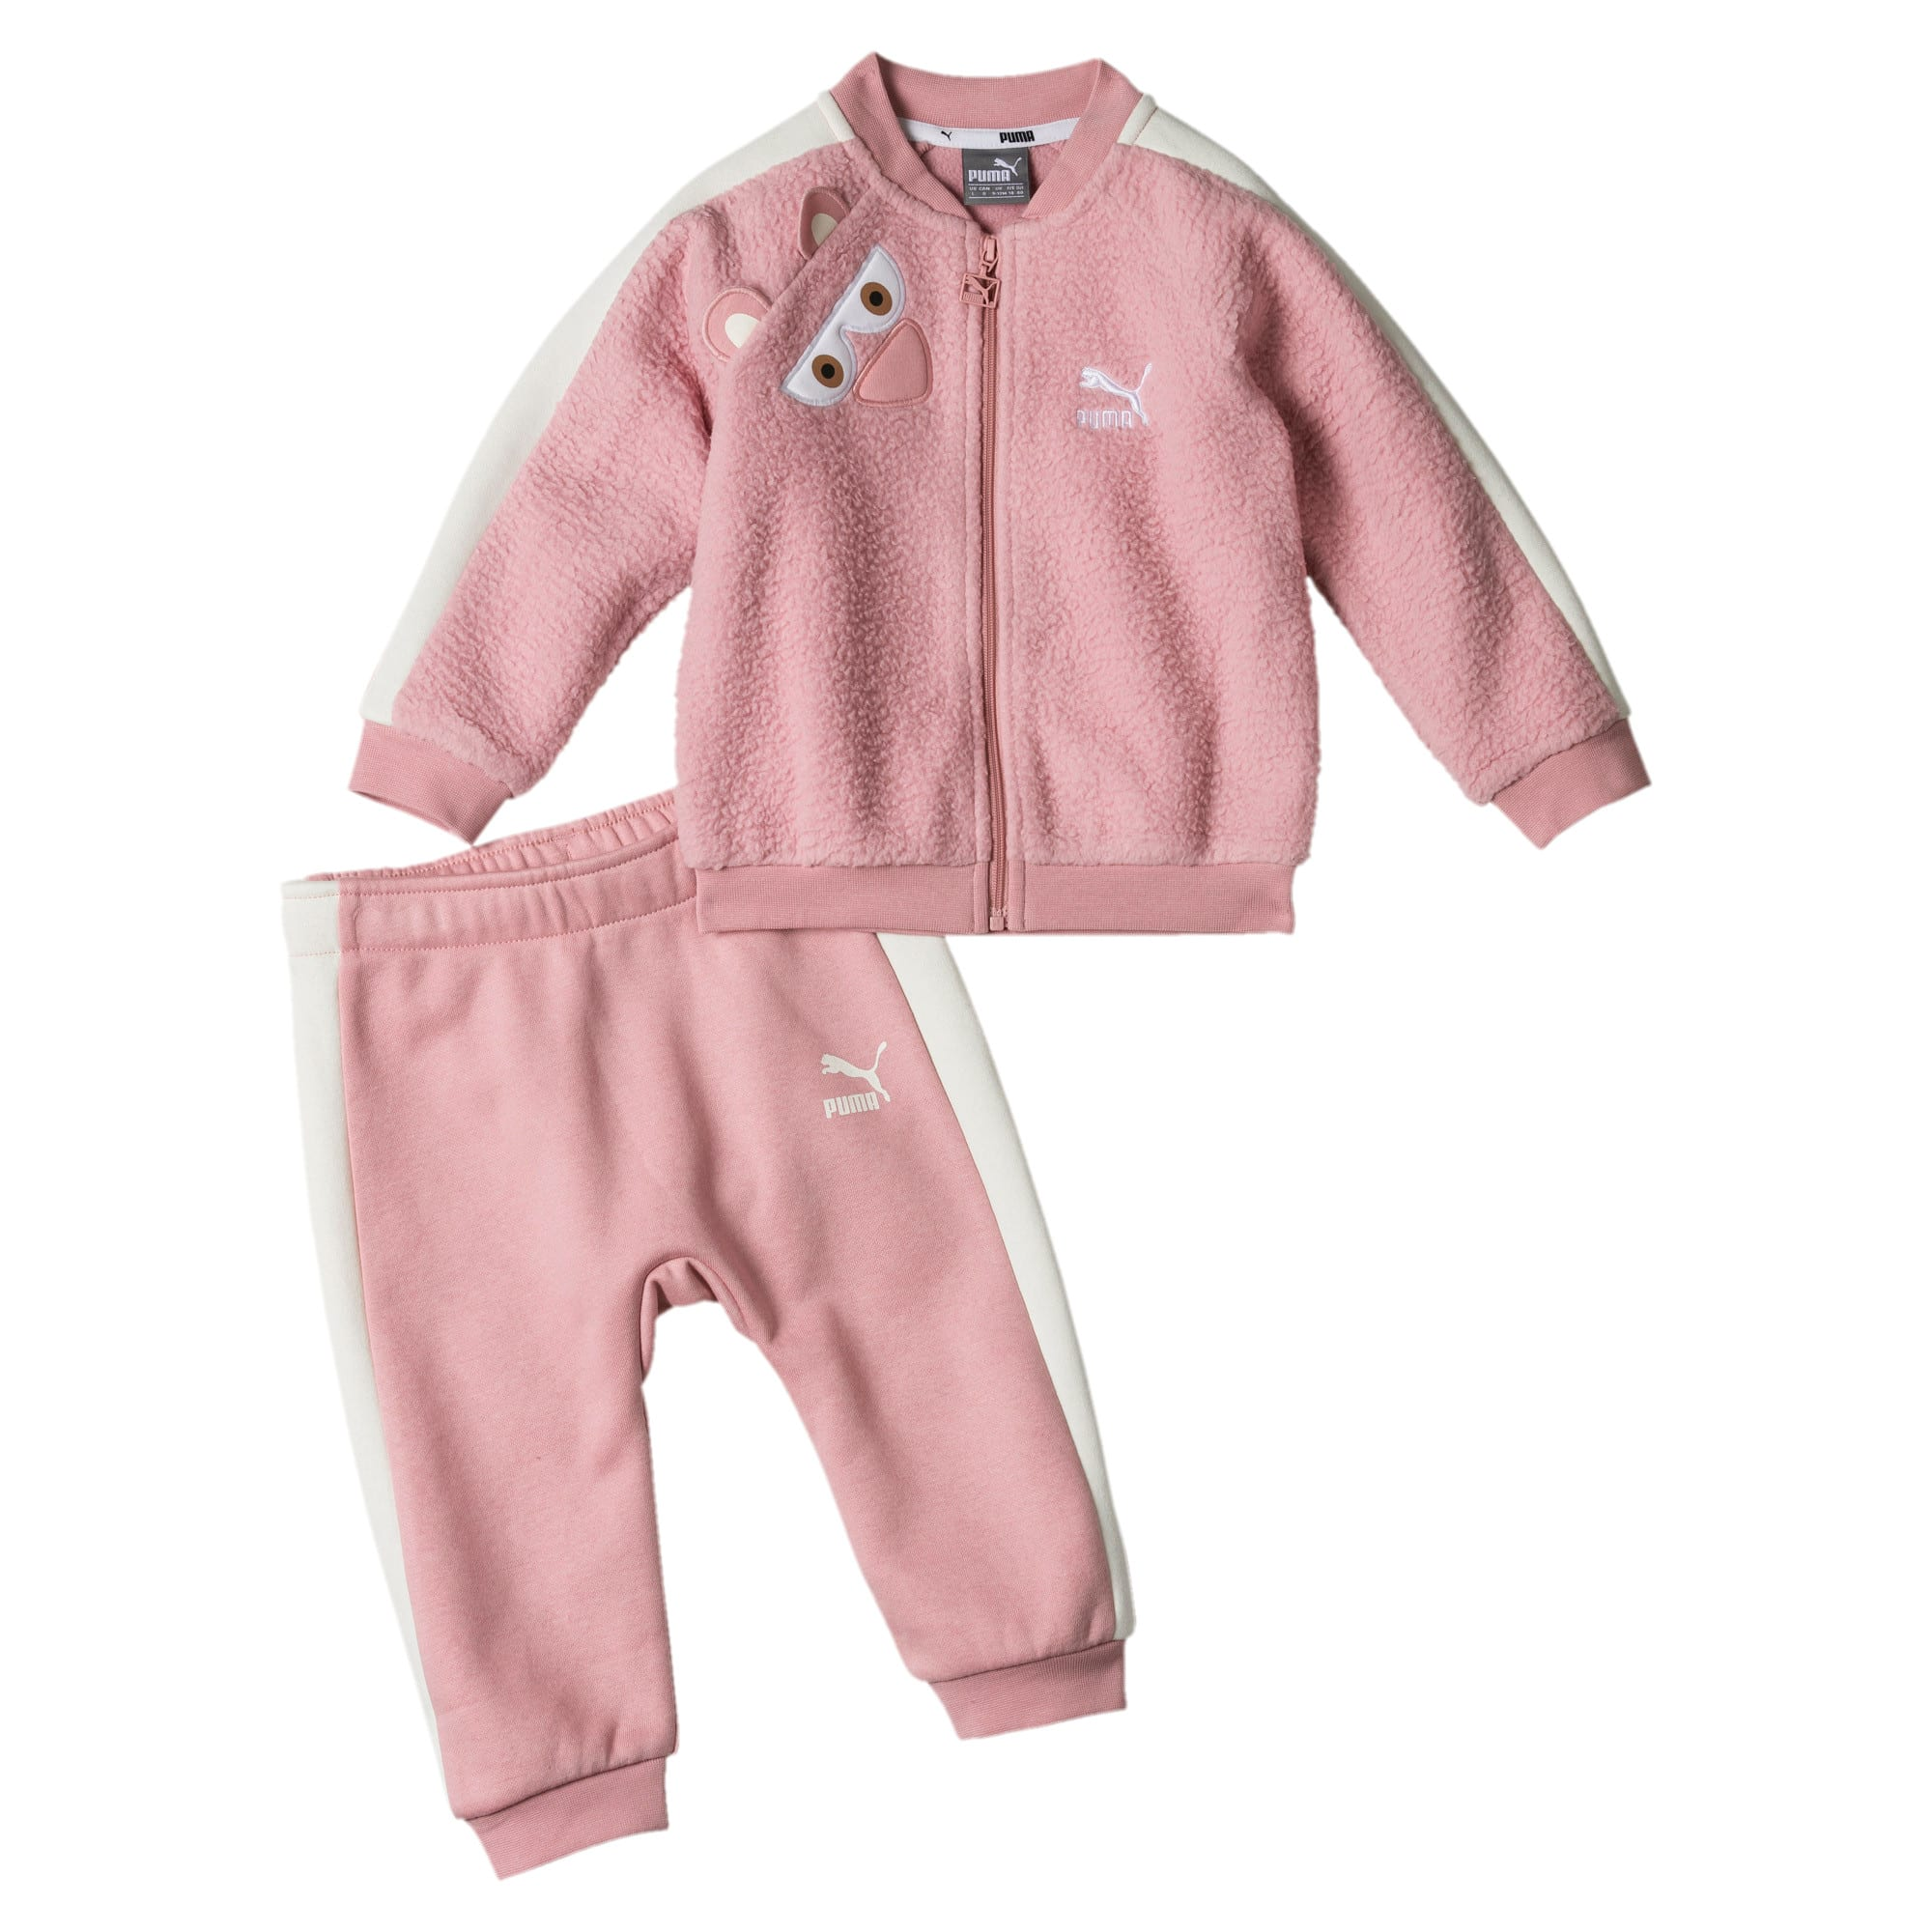 Thumbnail 3 of Monster Infant + Toddler Two-Piece Set, Bridal Rose, medium